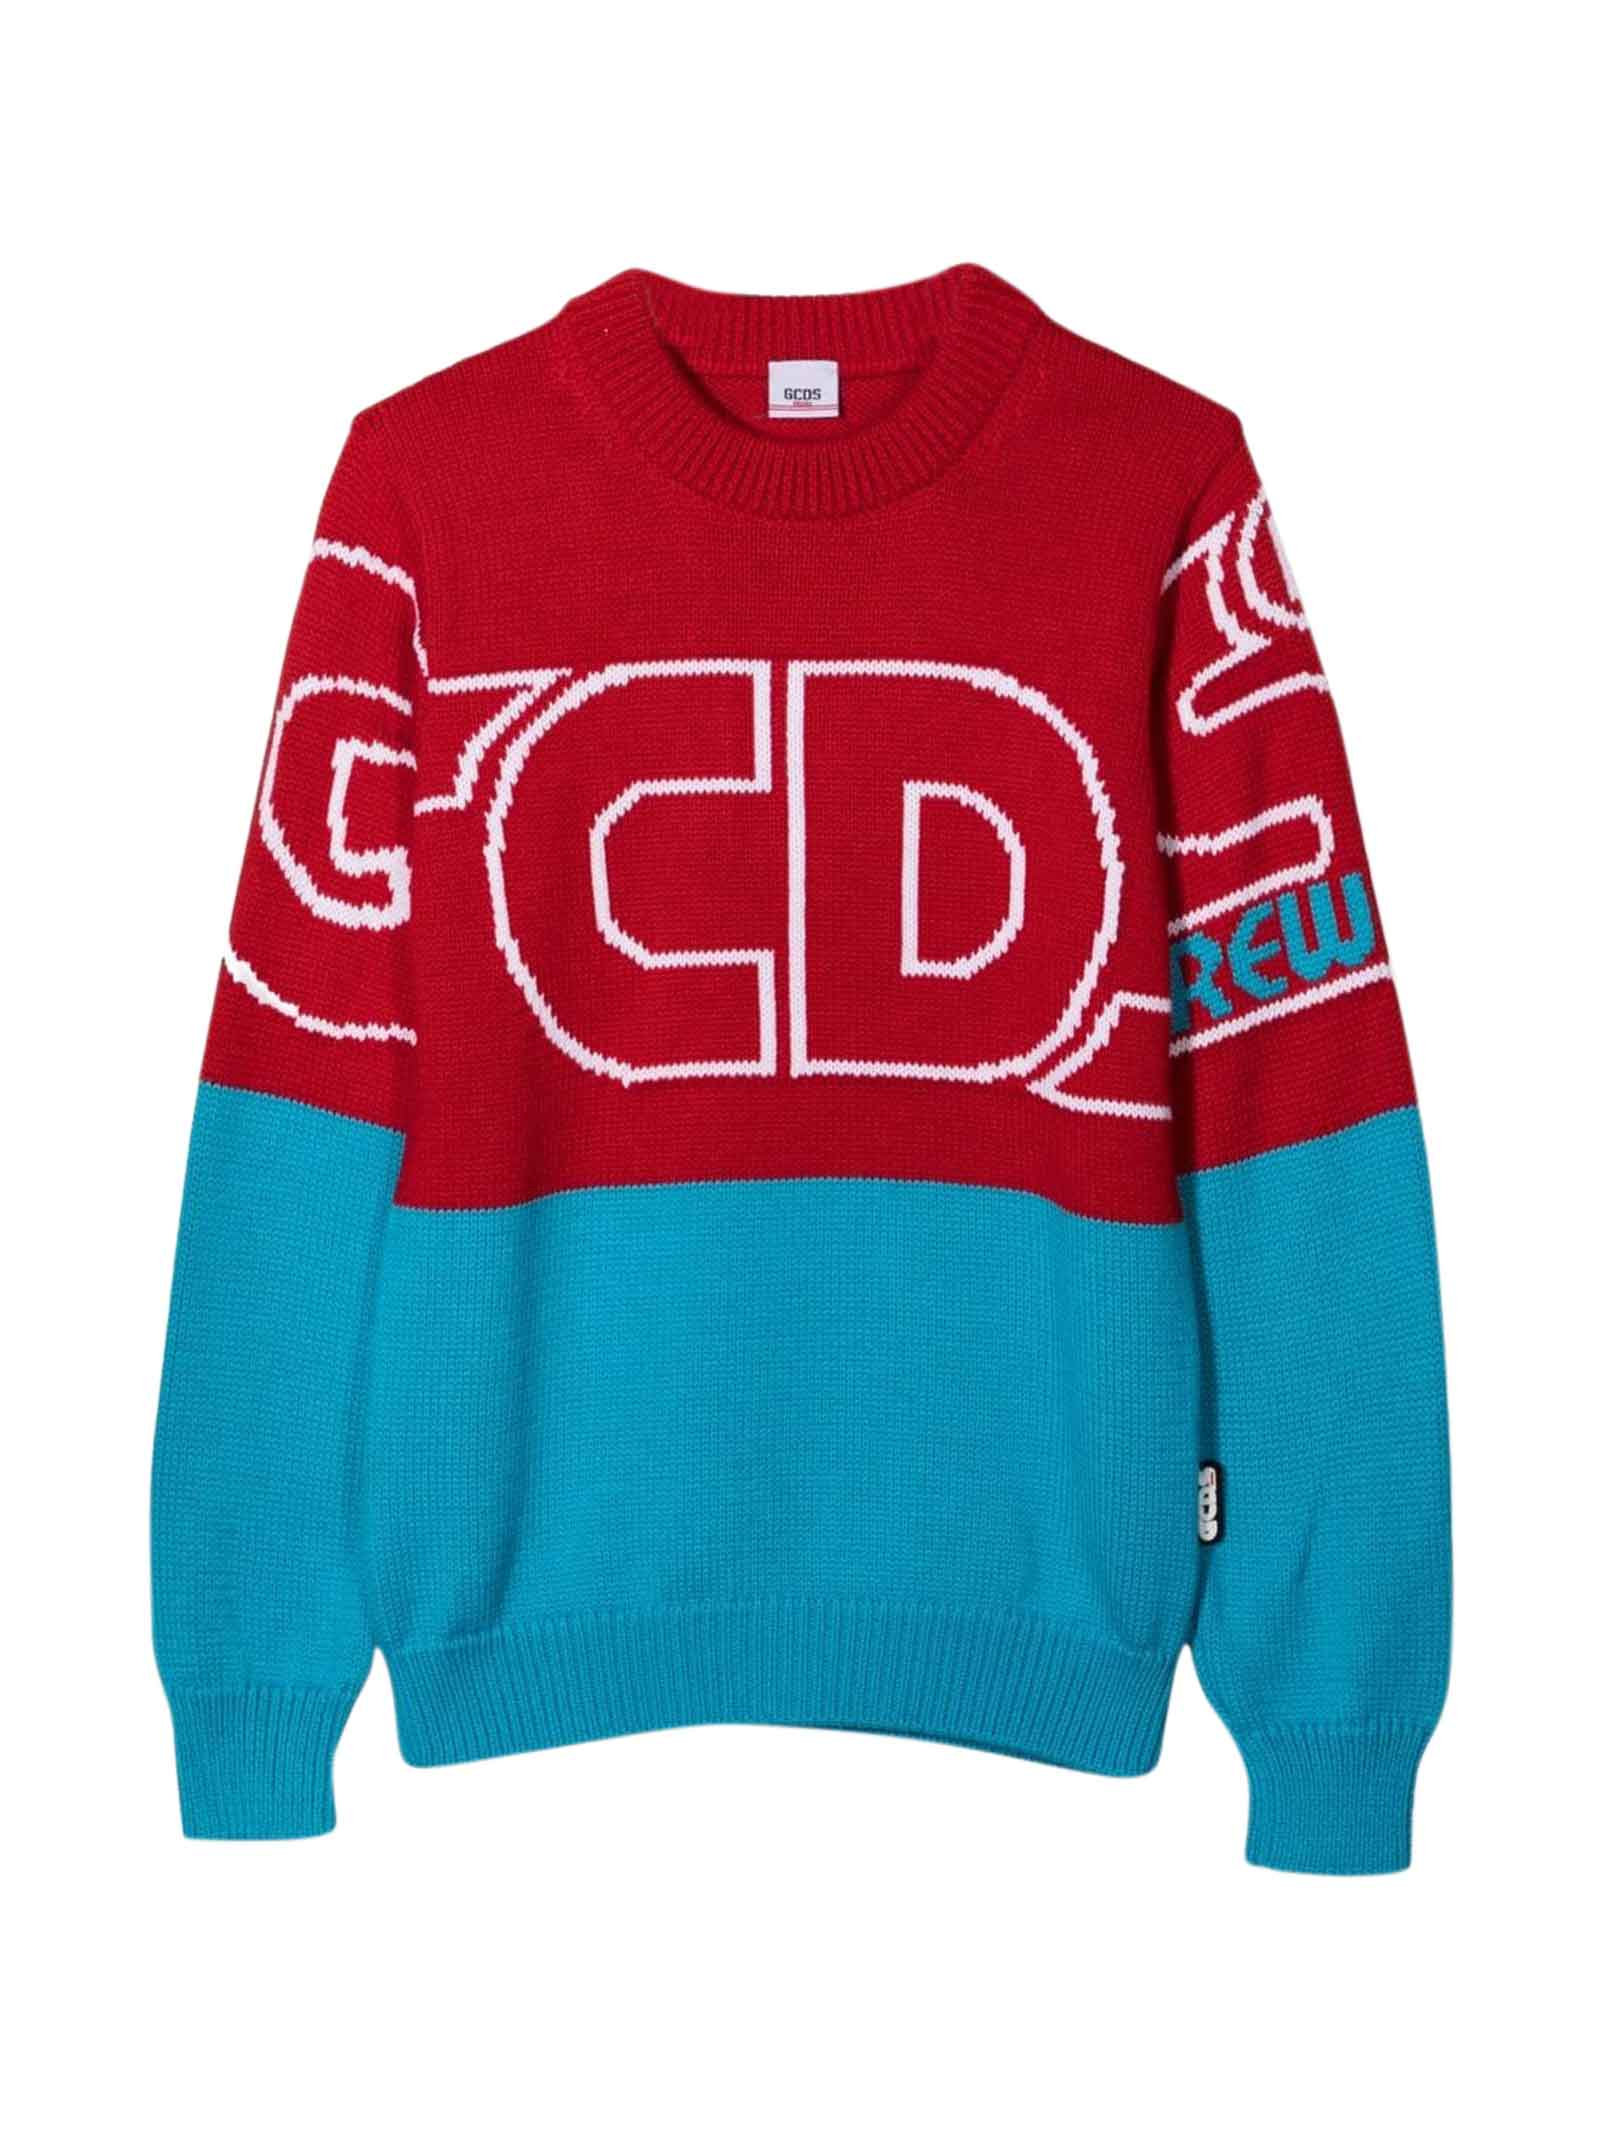 Blue And Red Sweatshirt